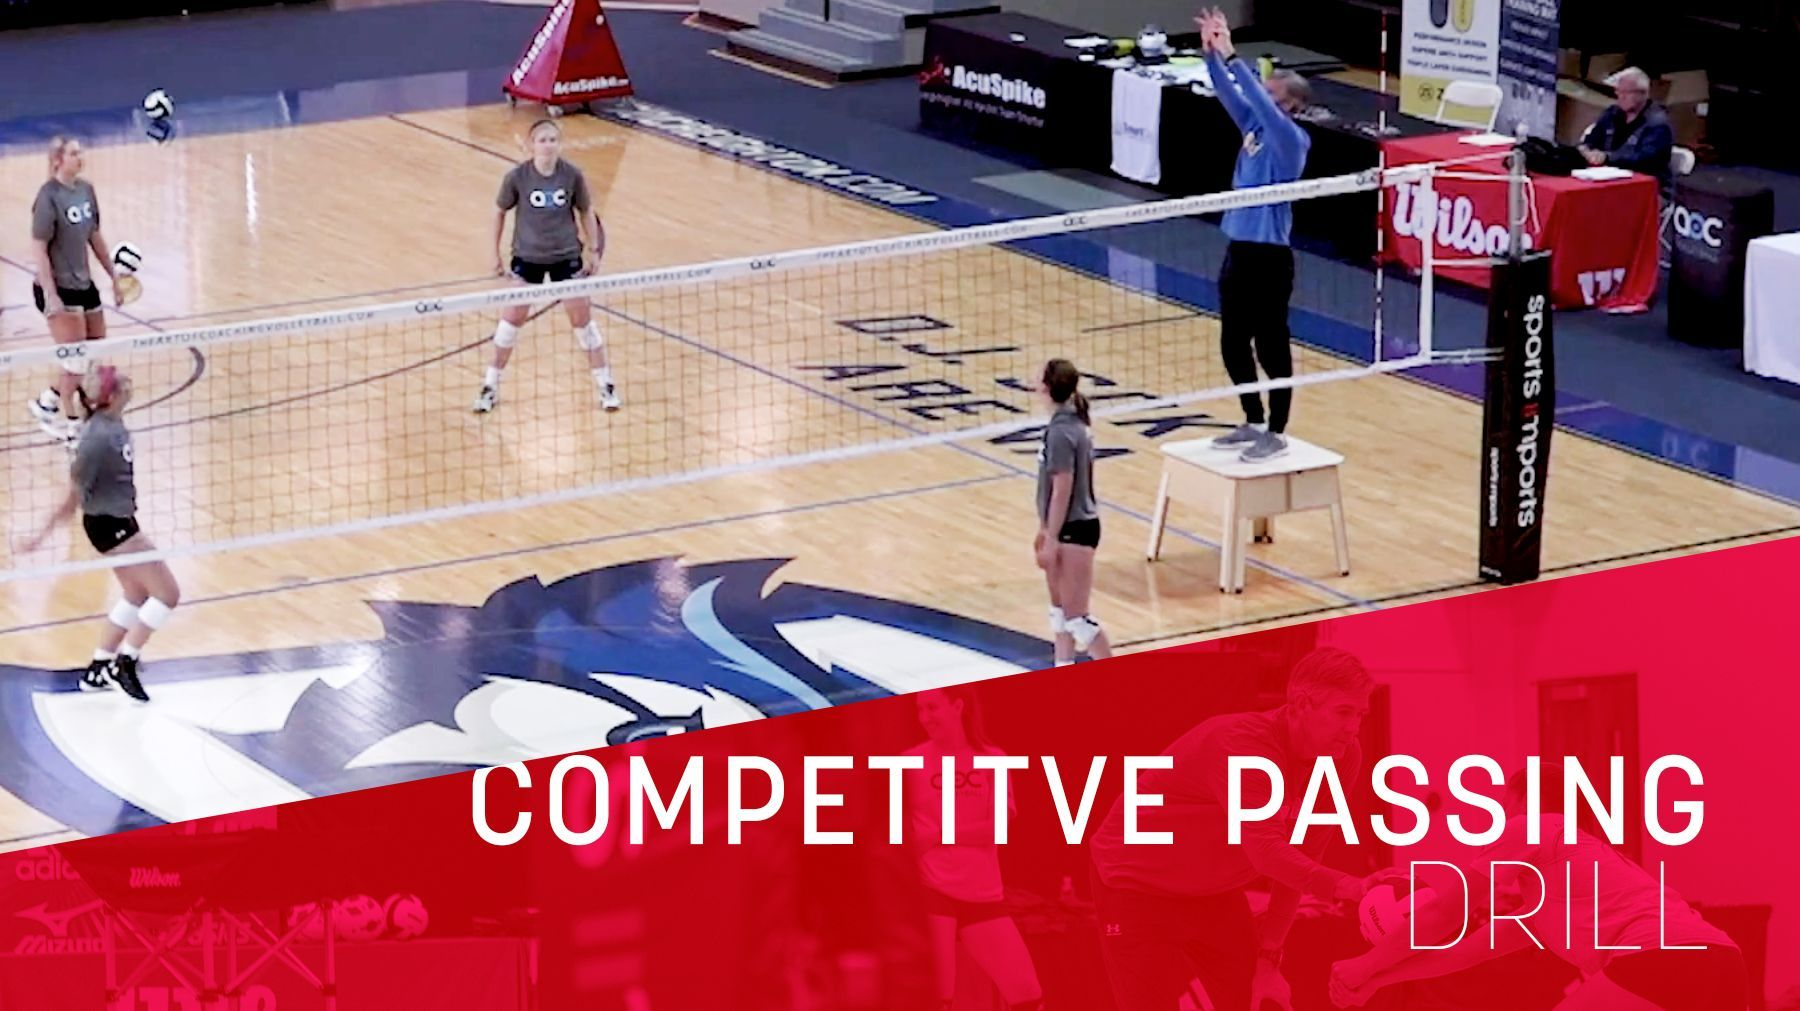 Competitive Passing Drill Coaching Volleyball Volleyball Practice Volleyball Workouts